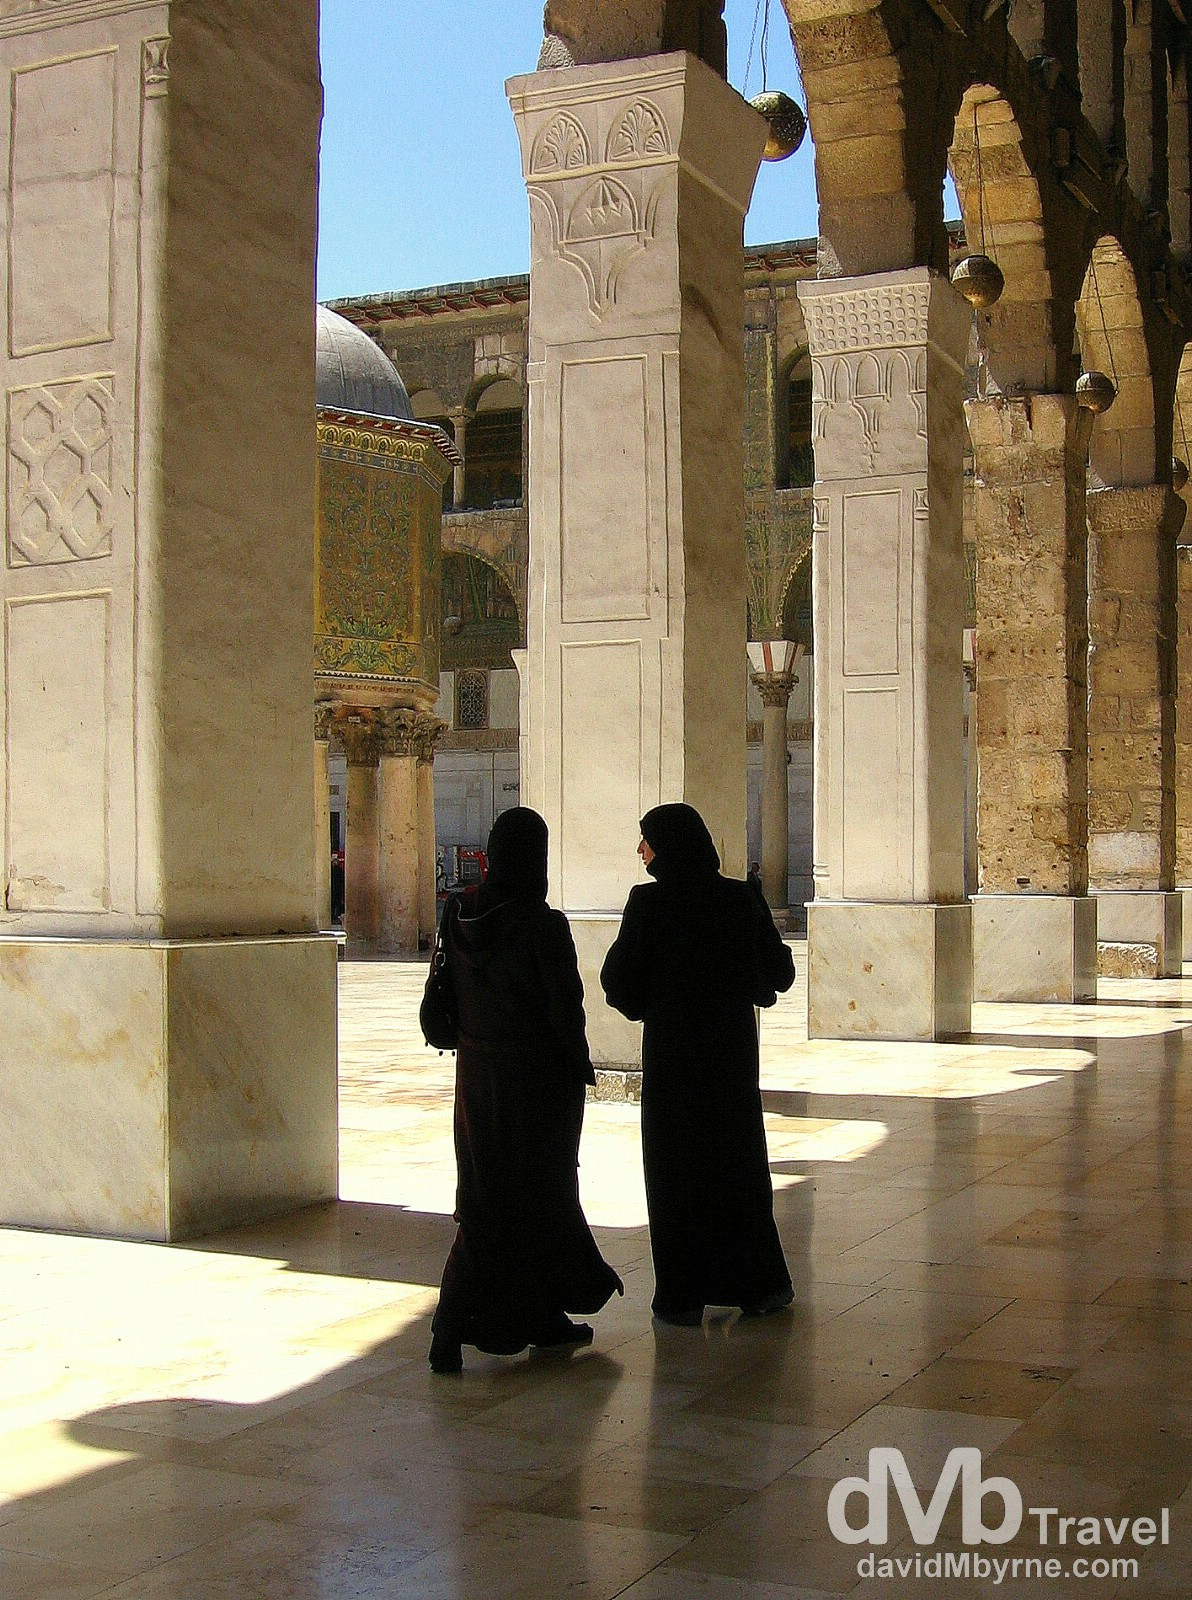 Two visitors in the courtyard of The Umayyad Mosque, aka The Great Mosque of Damascus, in Damascus, Syria. May 5, 2008.